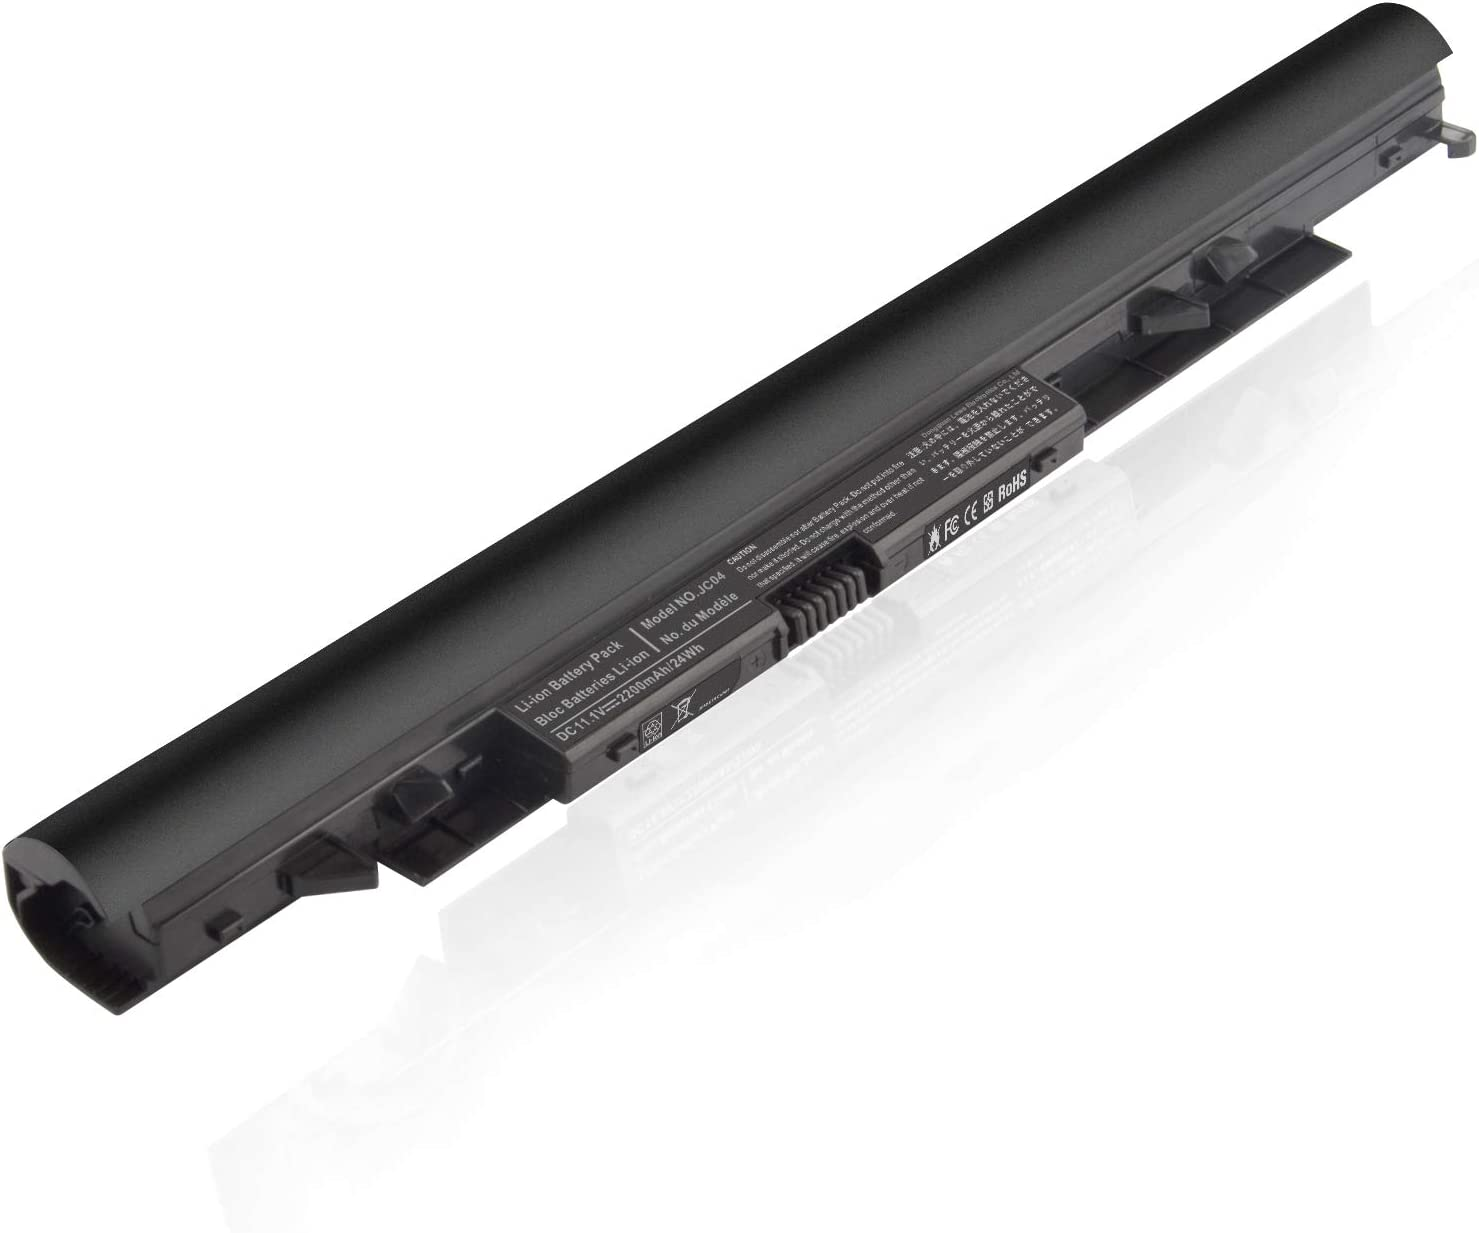 New JC03 JC04 Laptop Battery for HP Spare 919700-850 919701-850 919682-421 919682-831 919682-121 919681-221 15-BS000 15-BW000 15-bs0xx HSTNN-LB7V HSTNN-LB7W Pavilion 17z